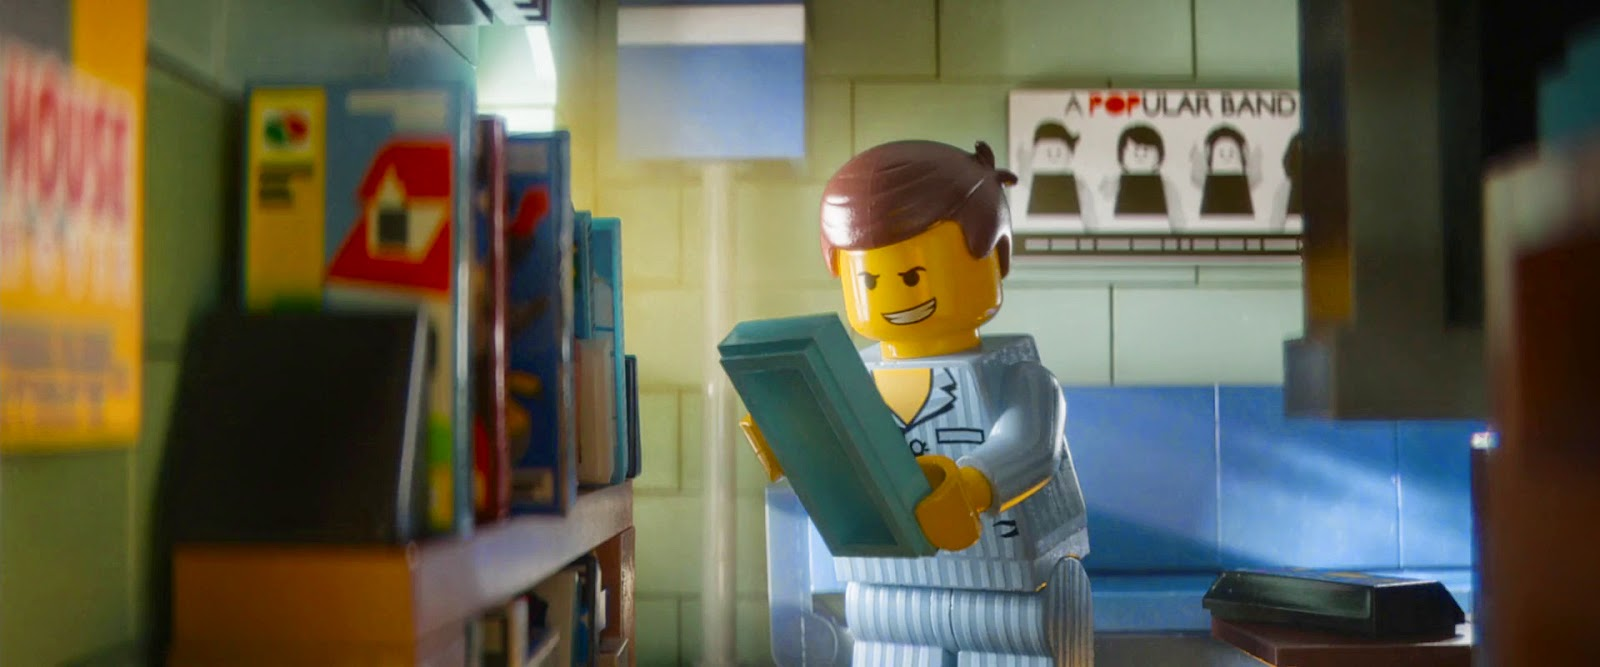 The Lego Movie (2014) 1080p S2 s The Lego Movie (2014) 1080p